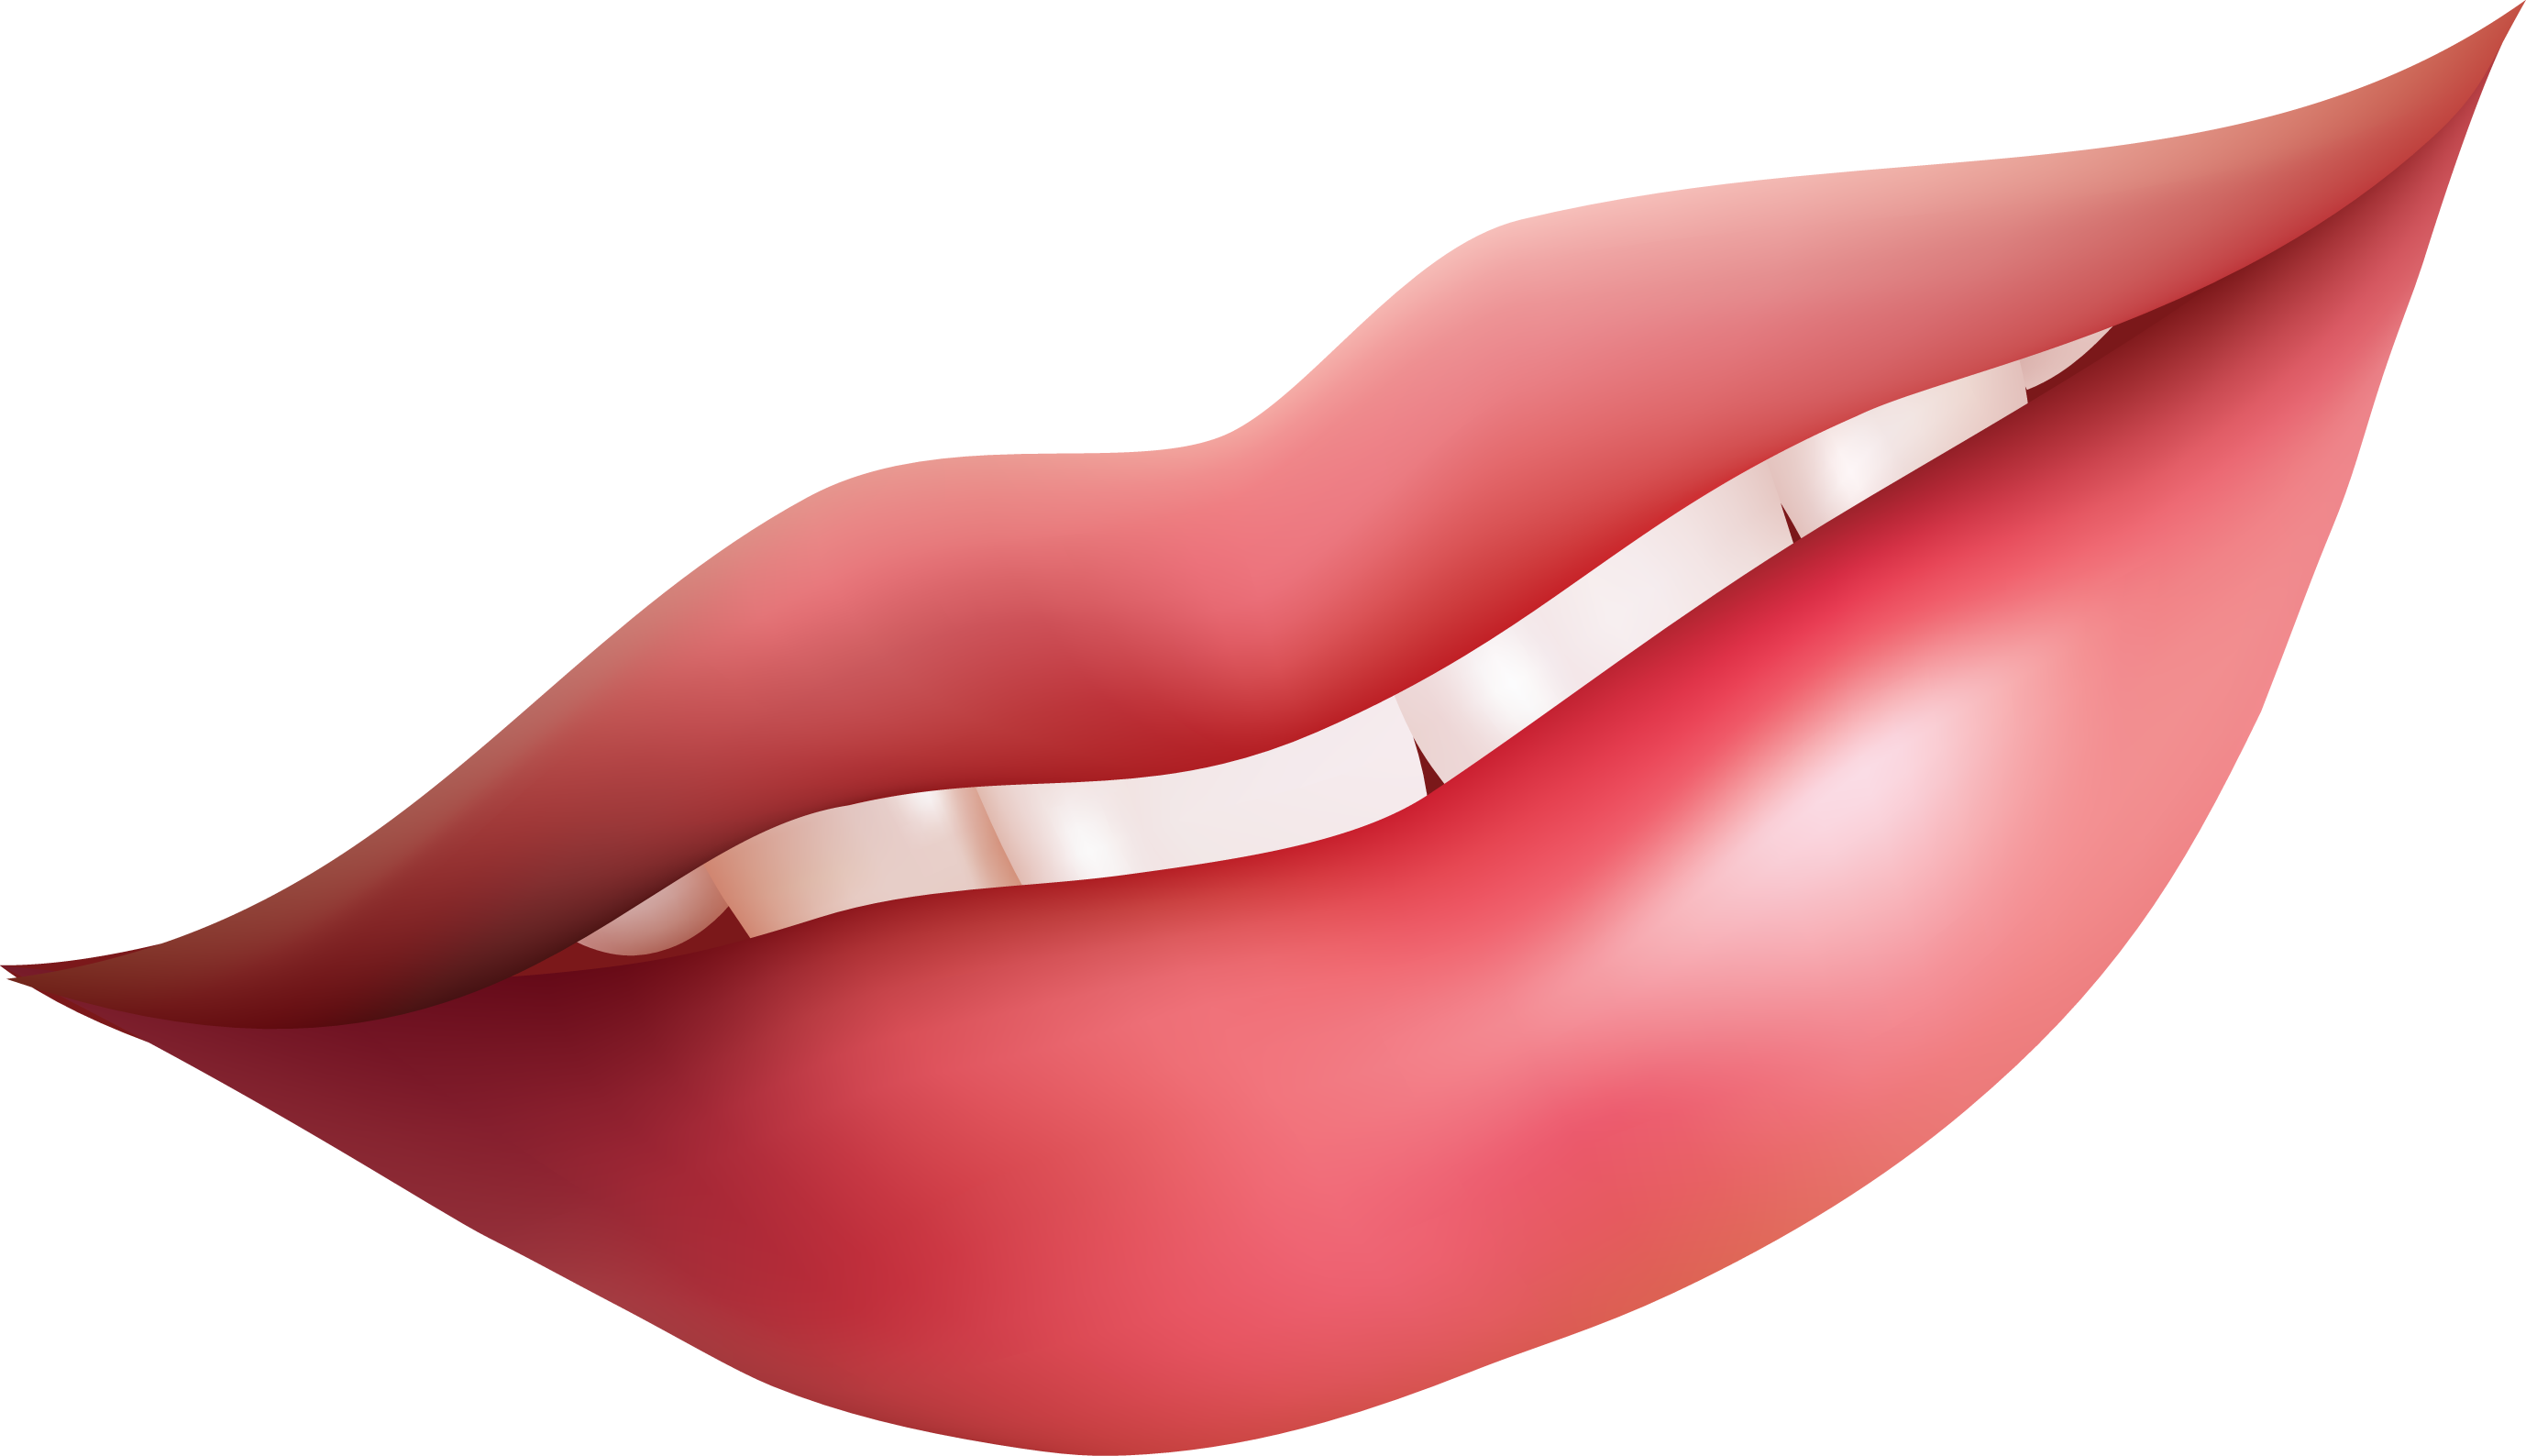 Lips vector clipart image #5508 - Shhh Lips PNG